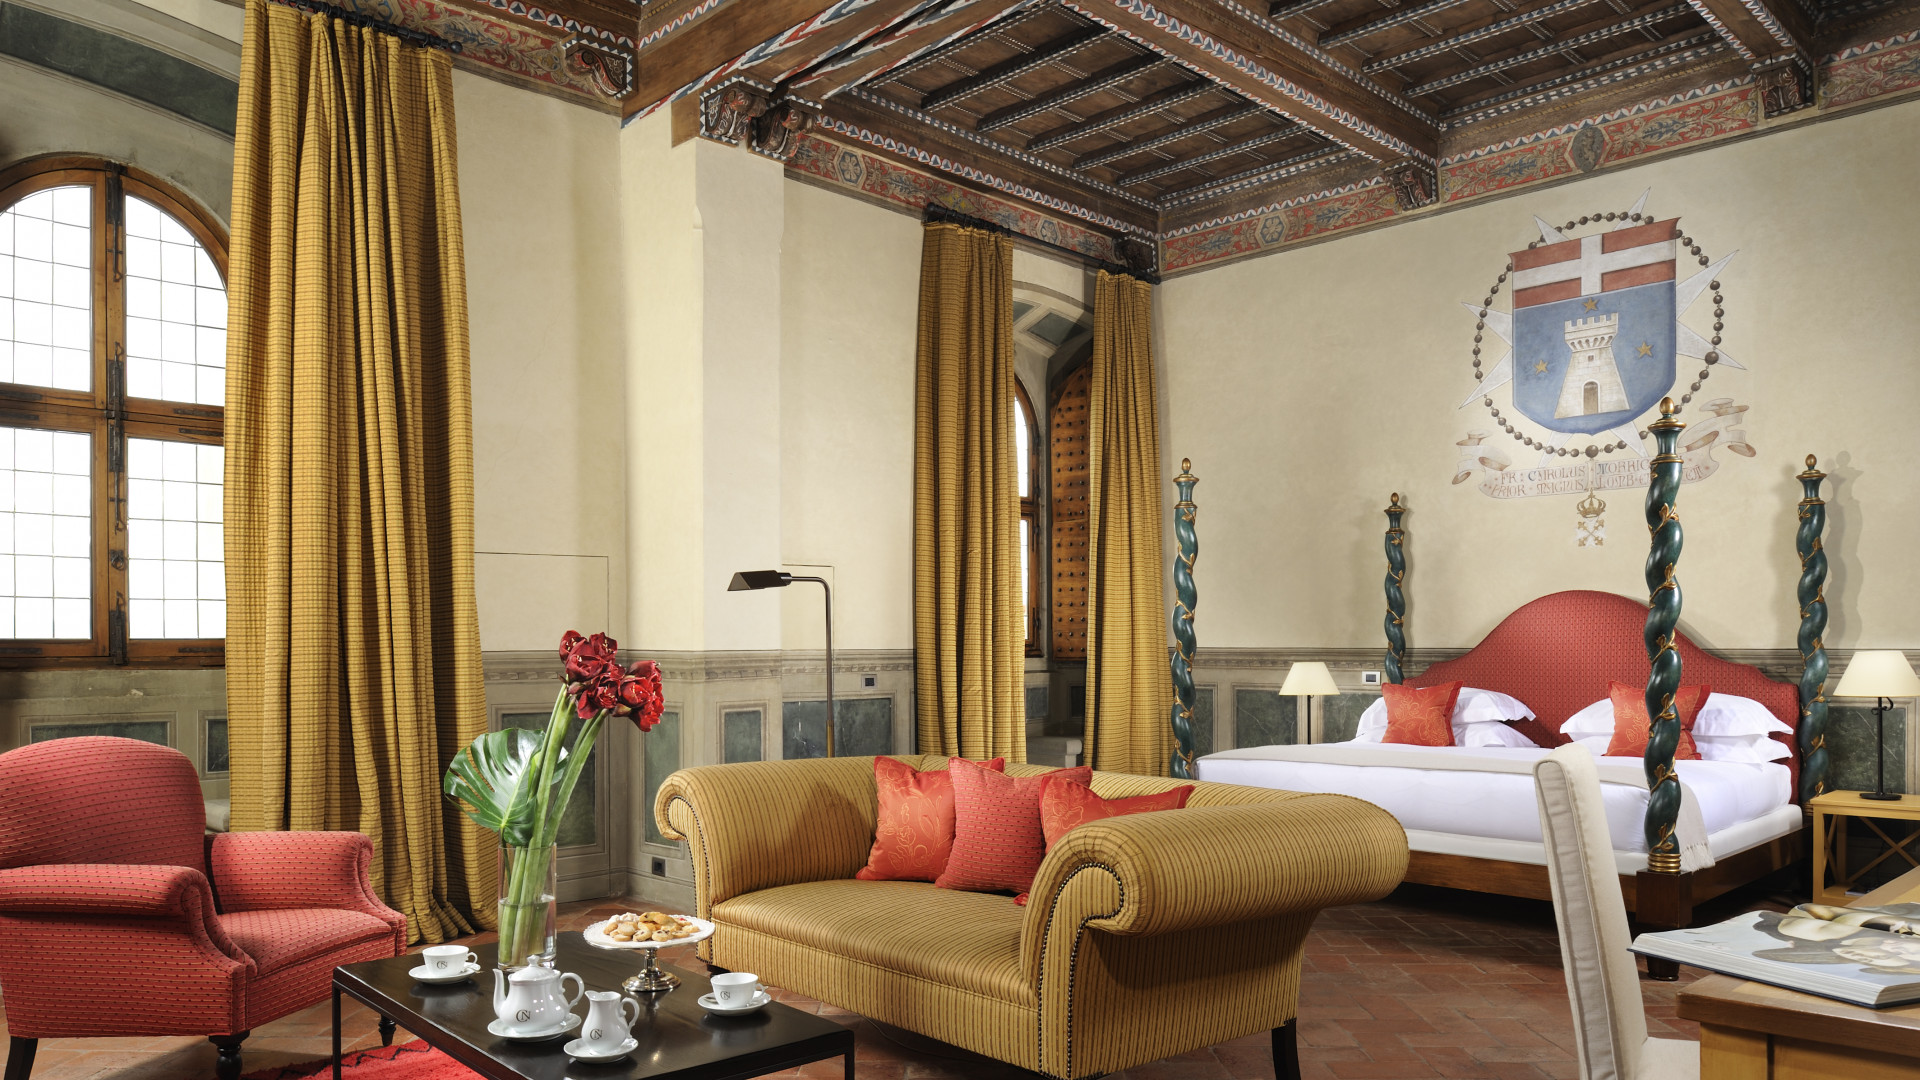 A superior suite at Castello del Nero